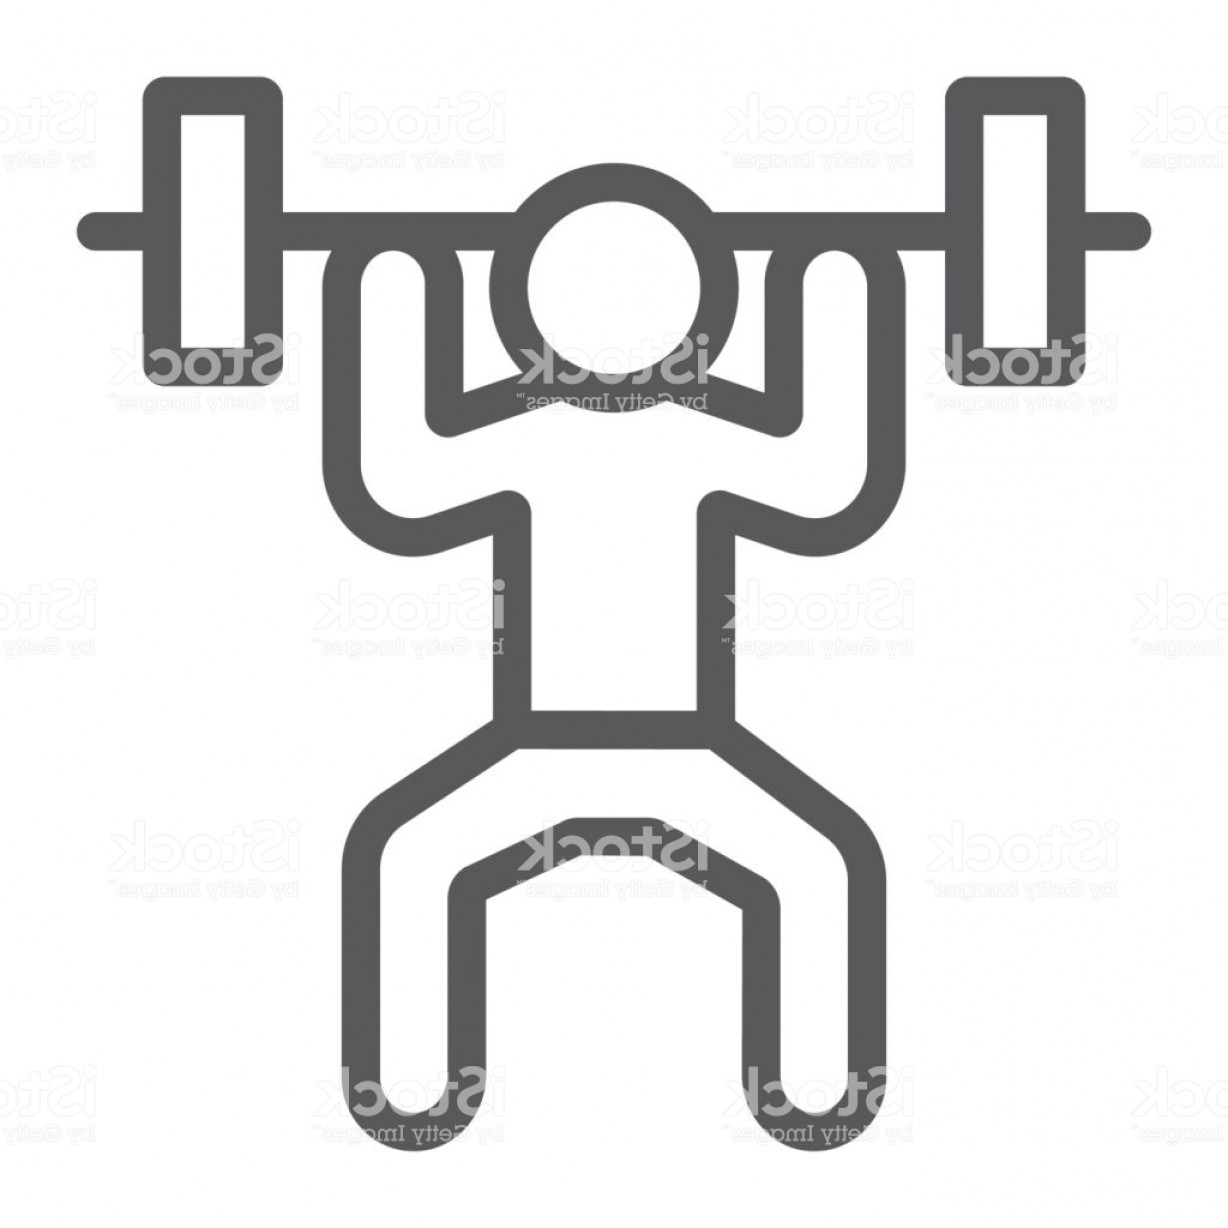 Weight Lifting Vector Graphics: Weightlifter Line Icon Sport And Bodybuilding Weightlifting Sign Vector Graphics A Gm